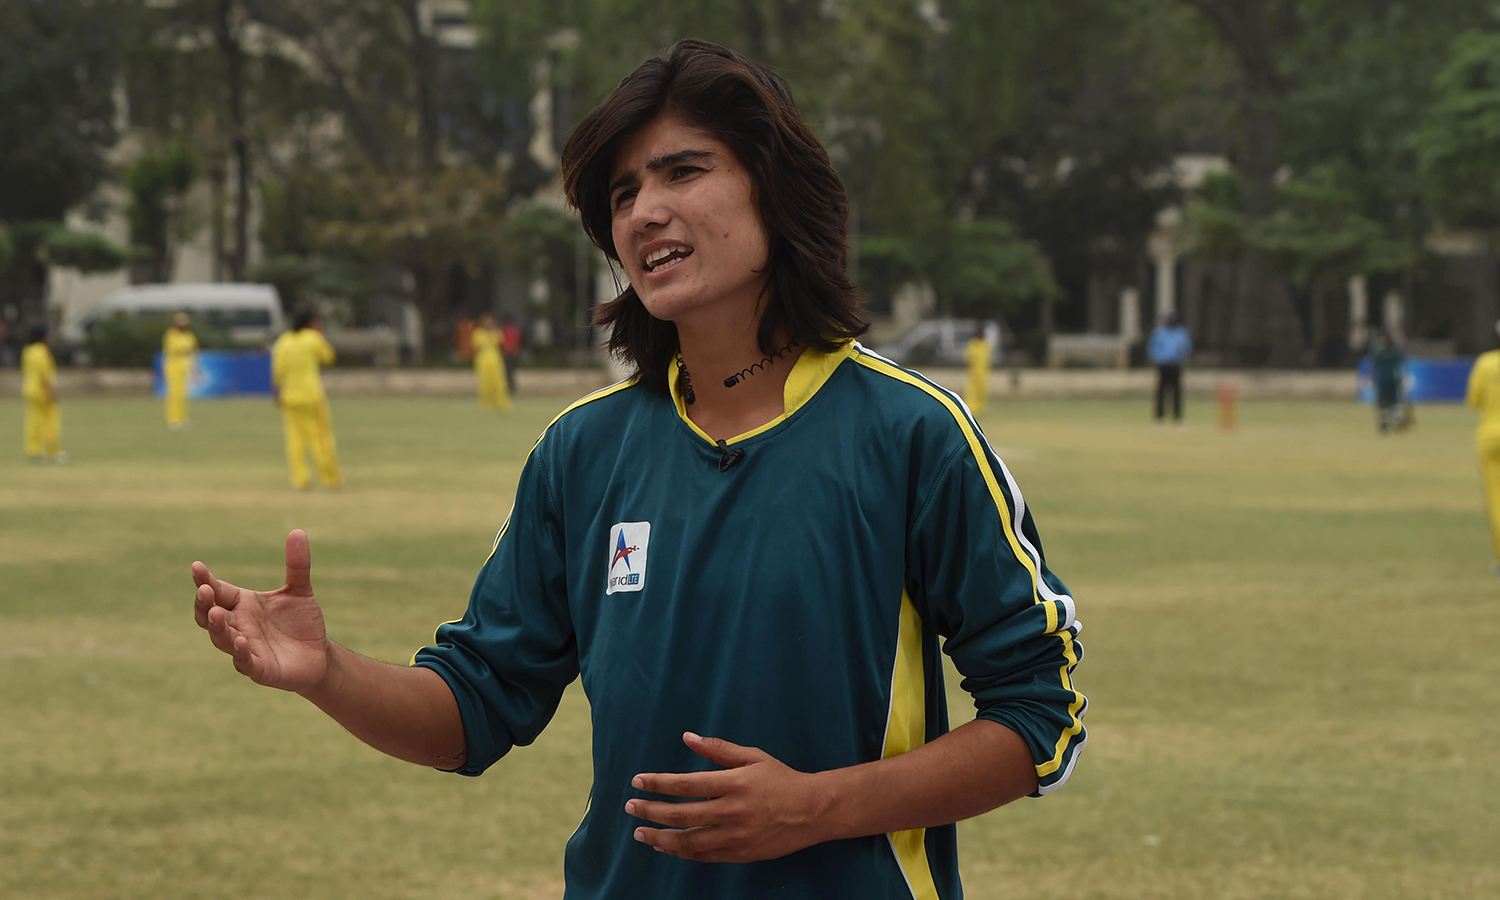 Pakistani national cricket and football player Diana Baig gestures as she speaks during an interview in Lahore. — AFP